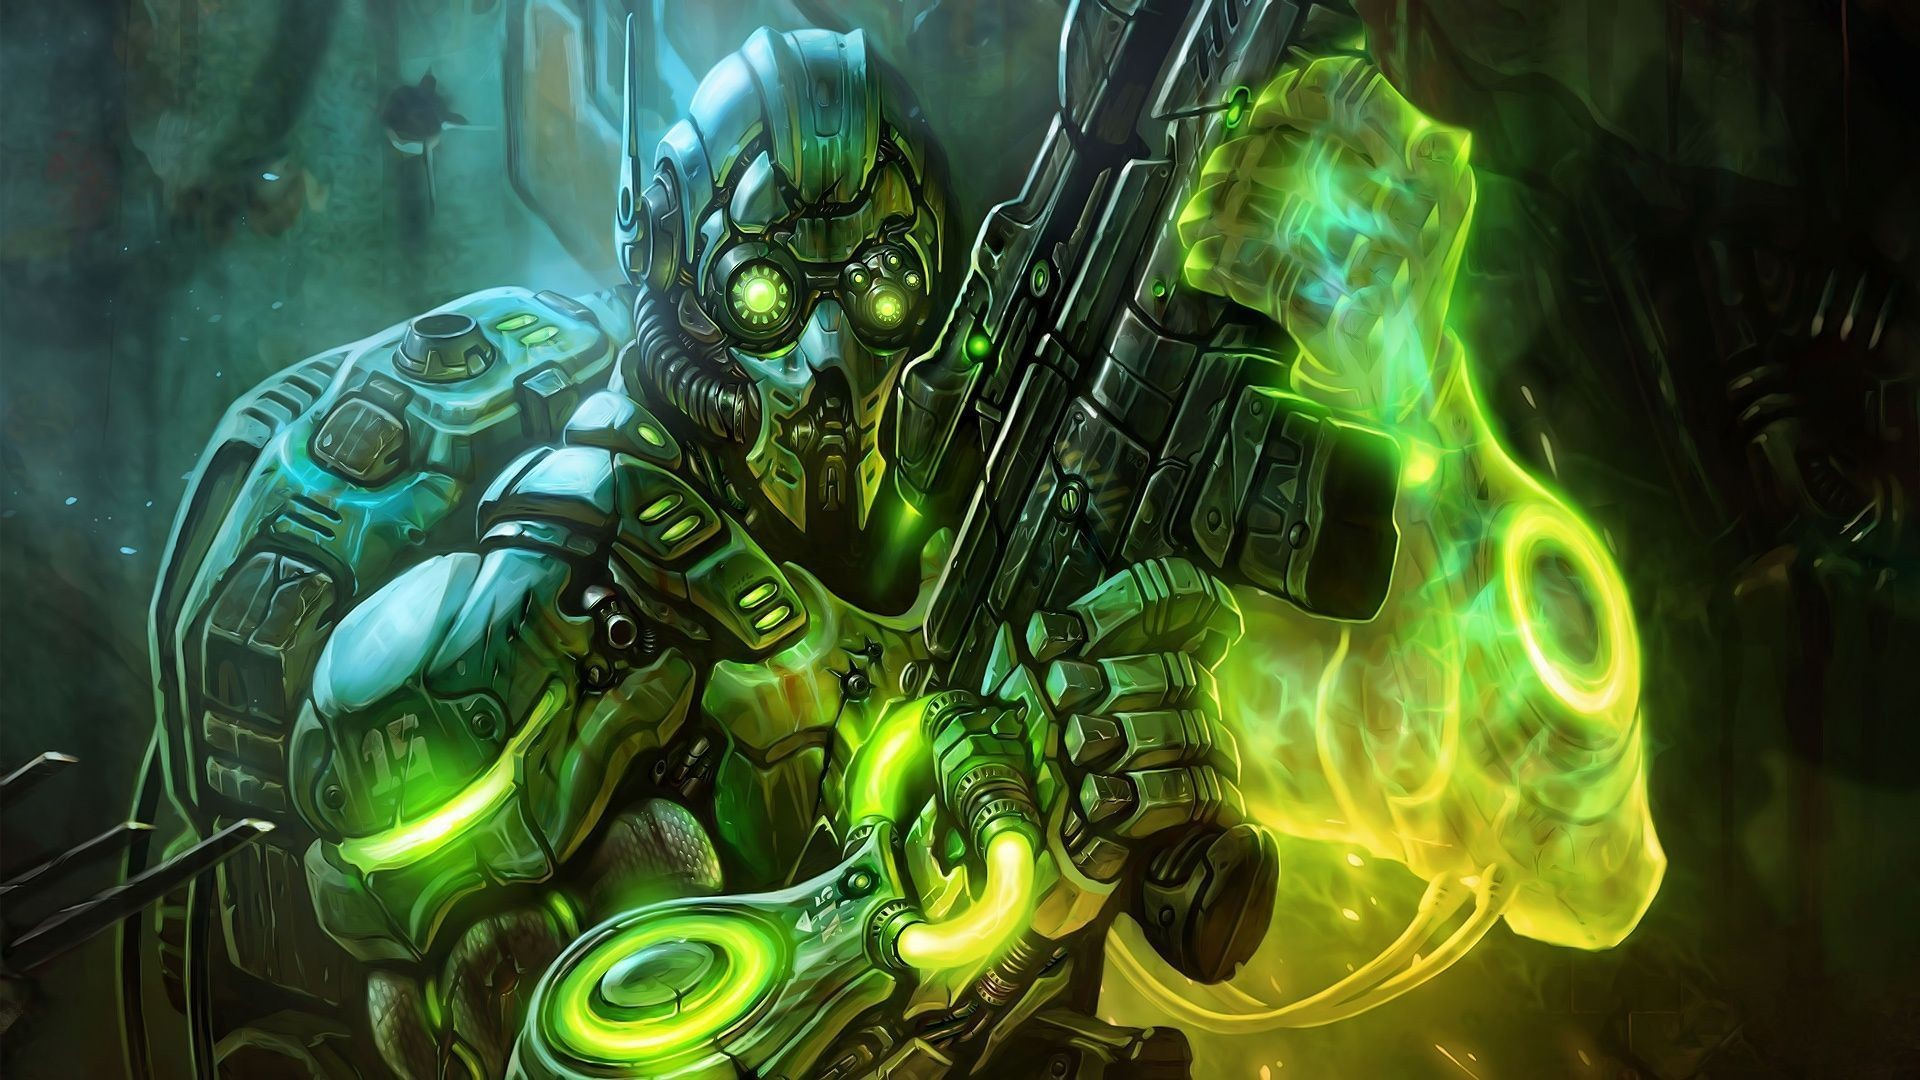 Starcraft 2 ghost cyborg Wallpapers